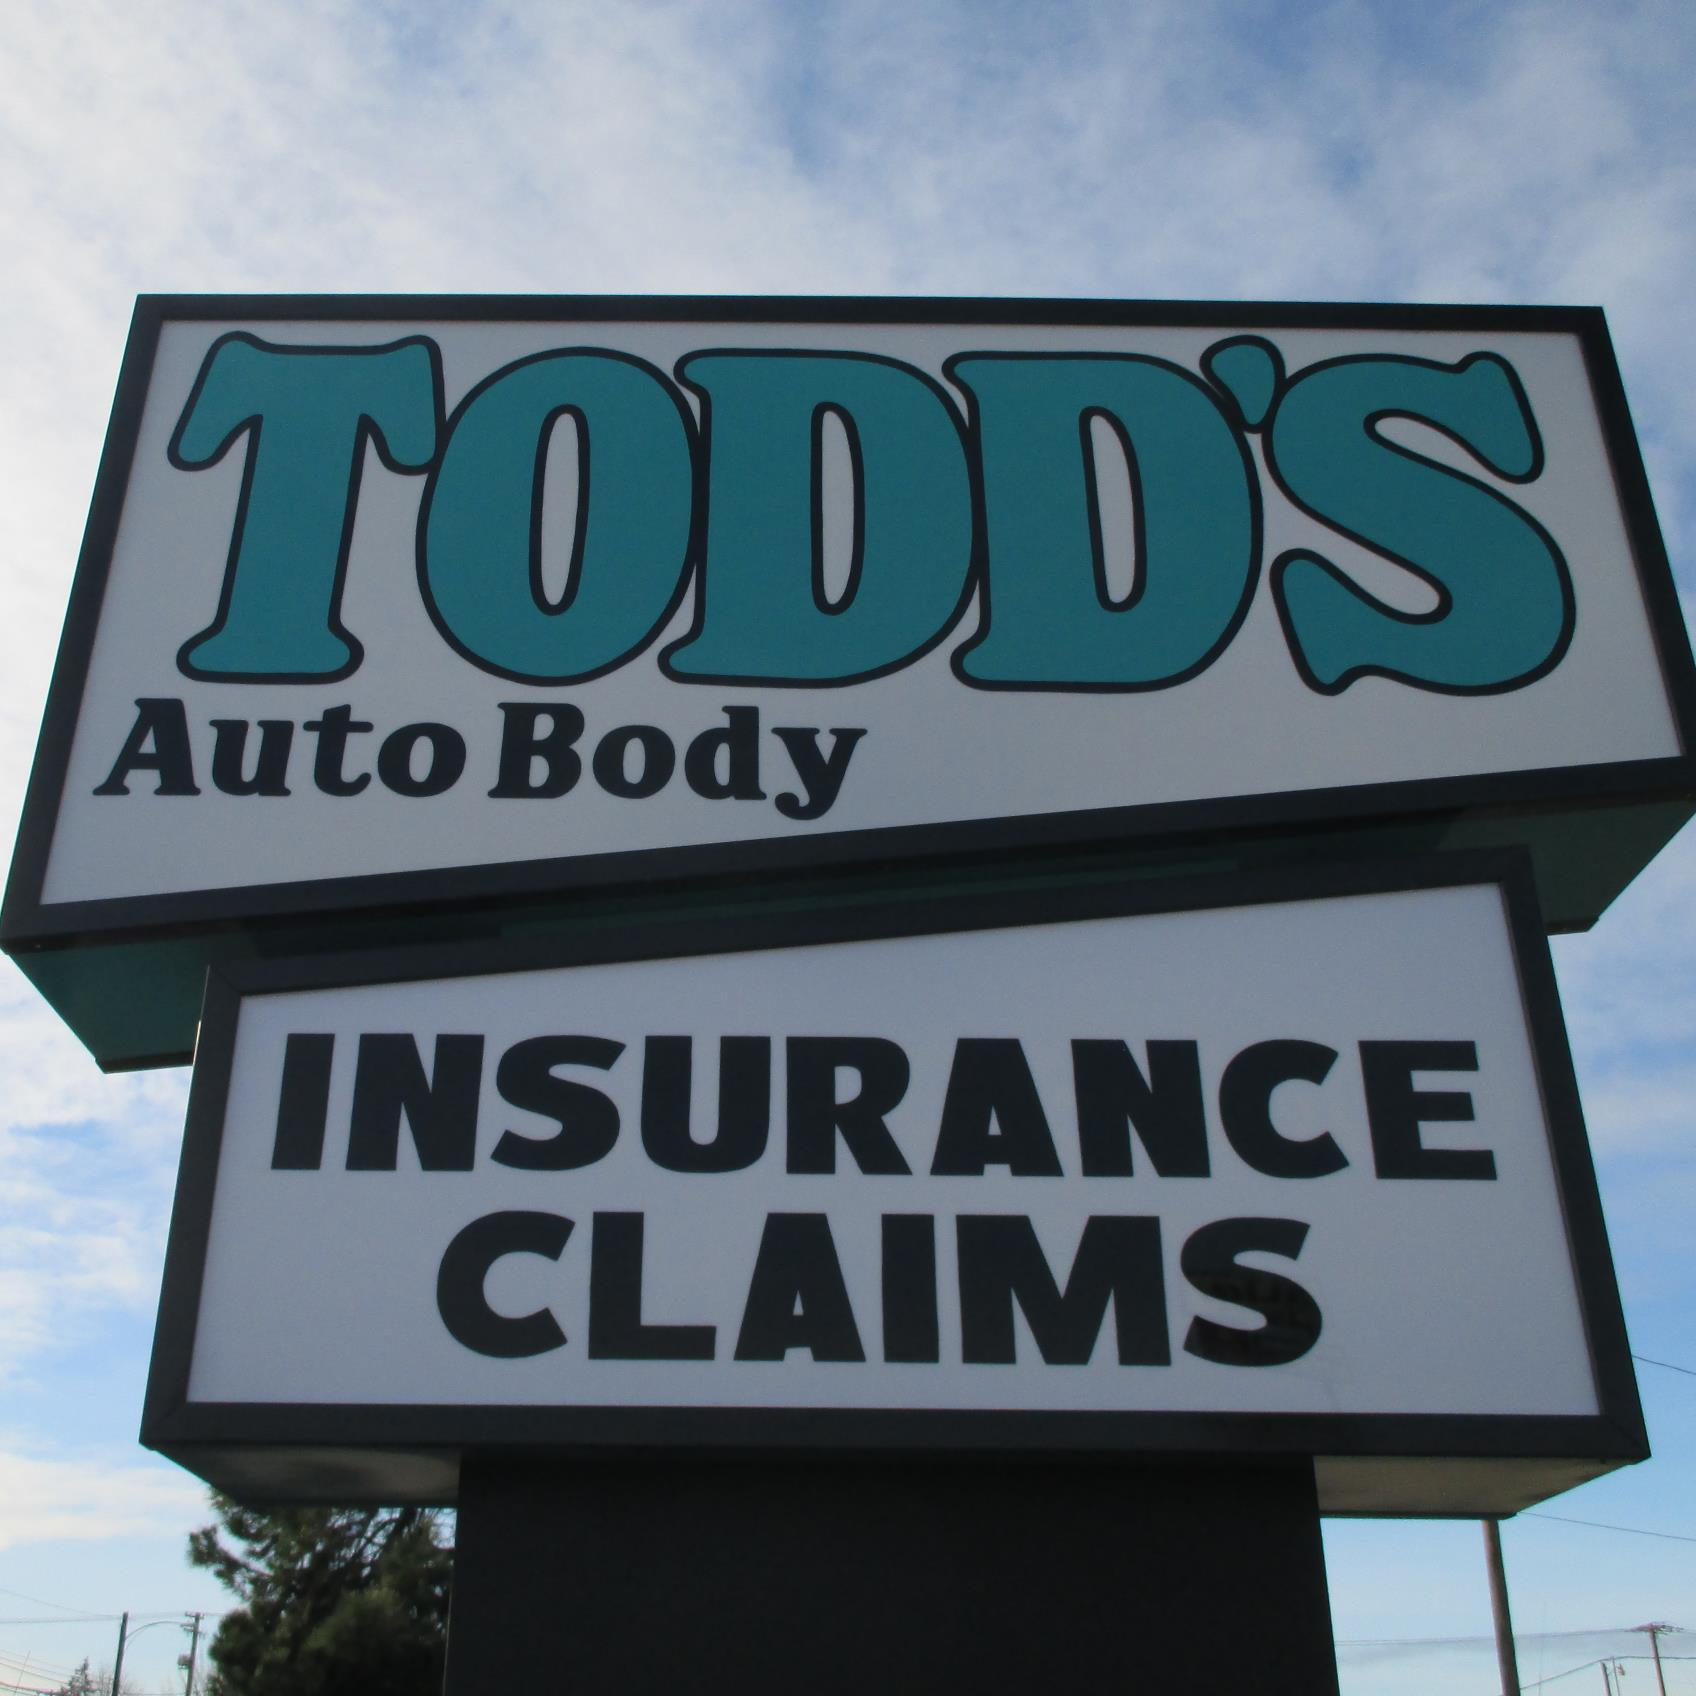 Todds Auto Body >> Todds Auto Body Inc Toddsautobody Twitter